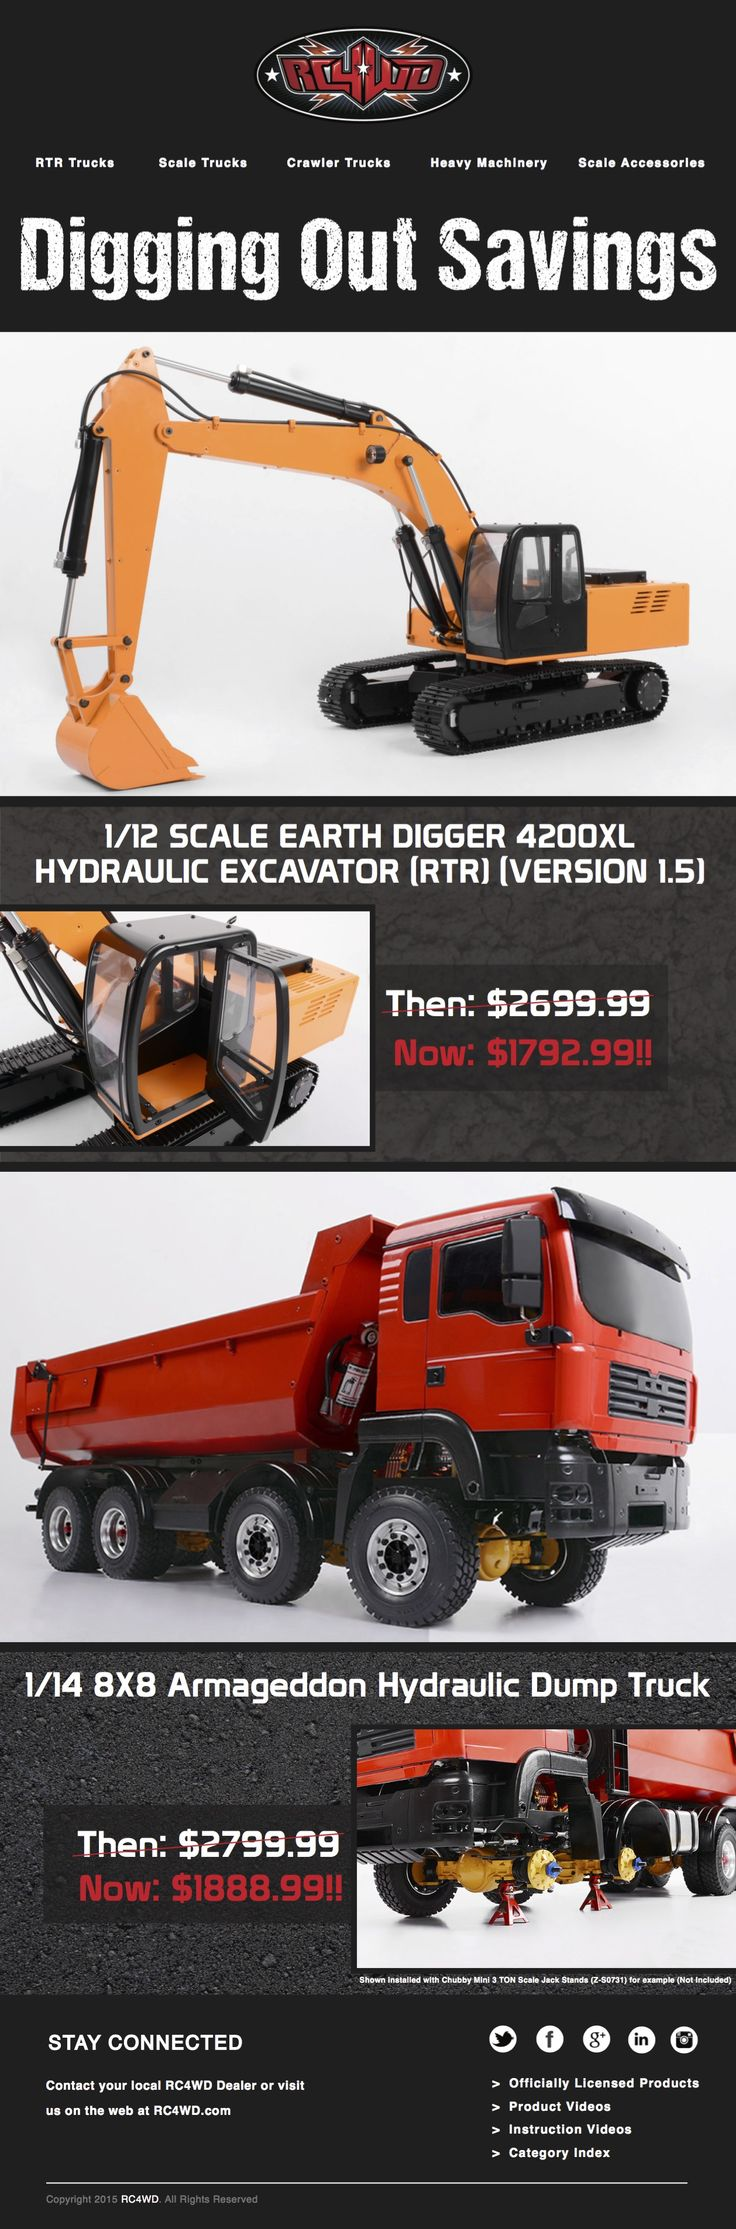 Our 1 12 scale earth digger 4200xl hydraulic exacavator rtr and 1